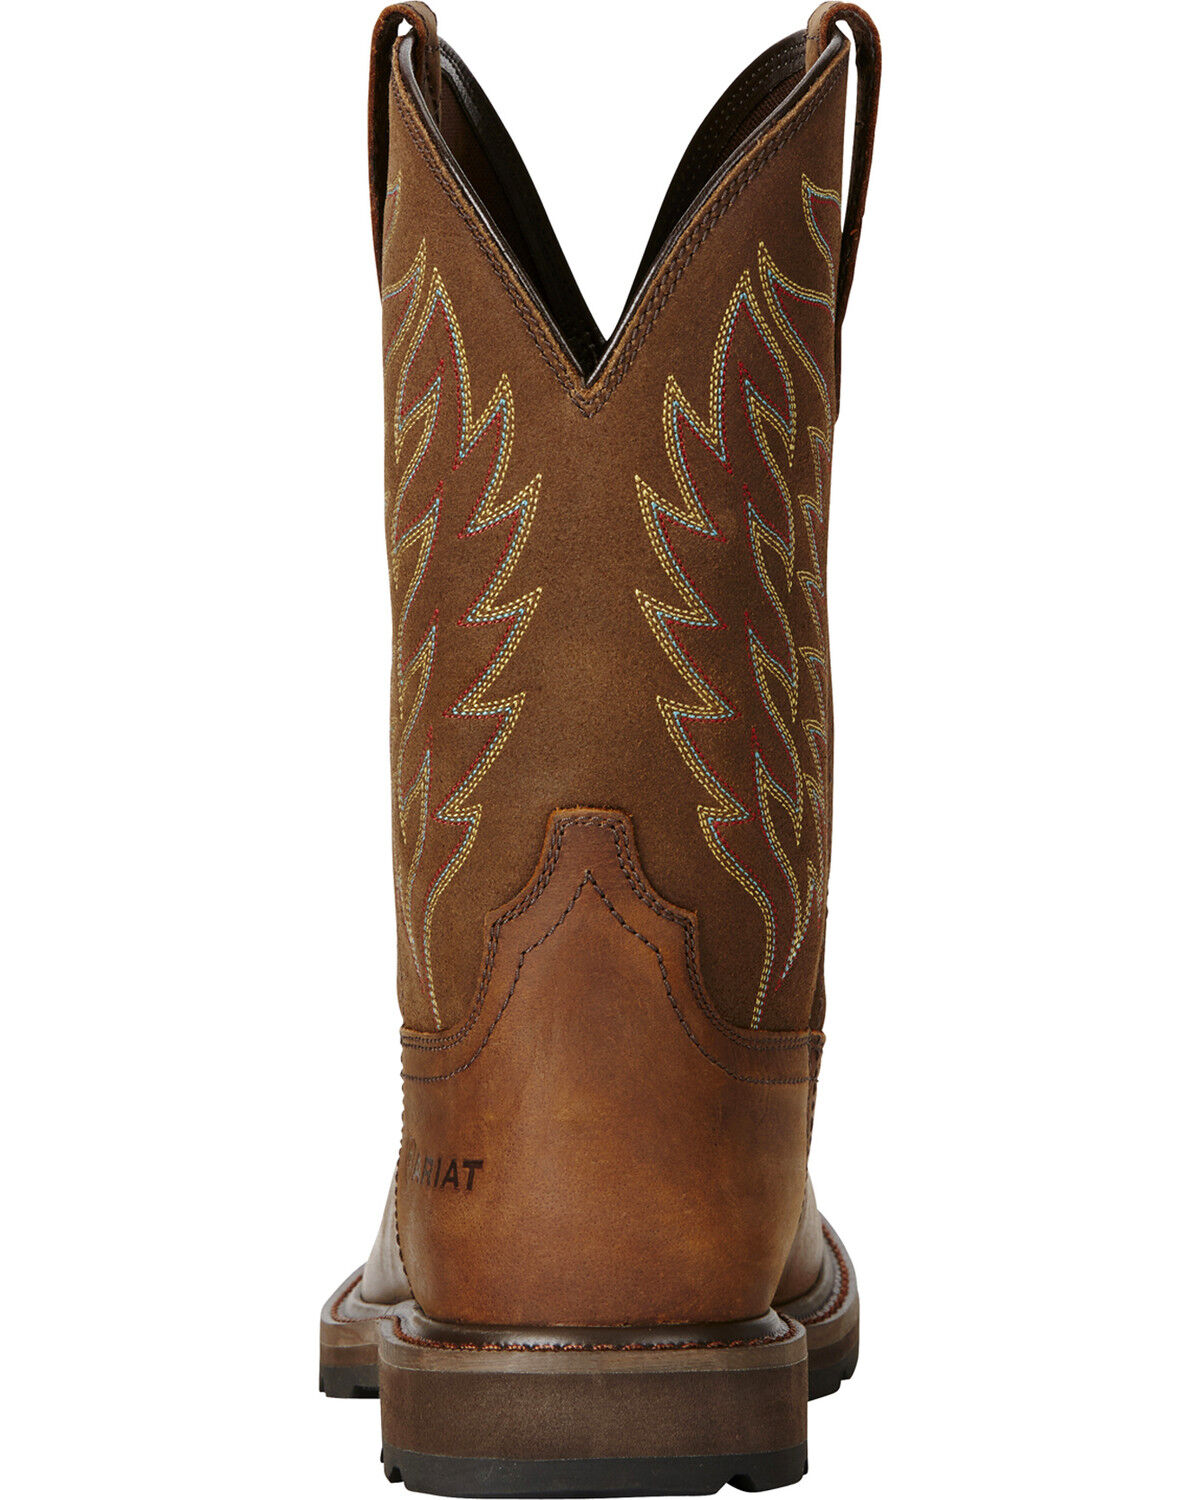 Ariat Men\u0027s Groundbreaker Square Toe Western Work Boots